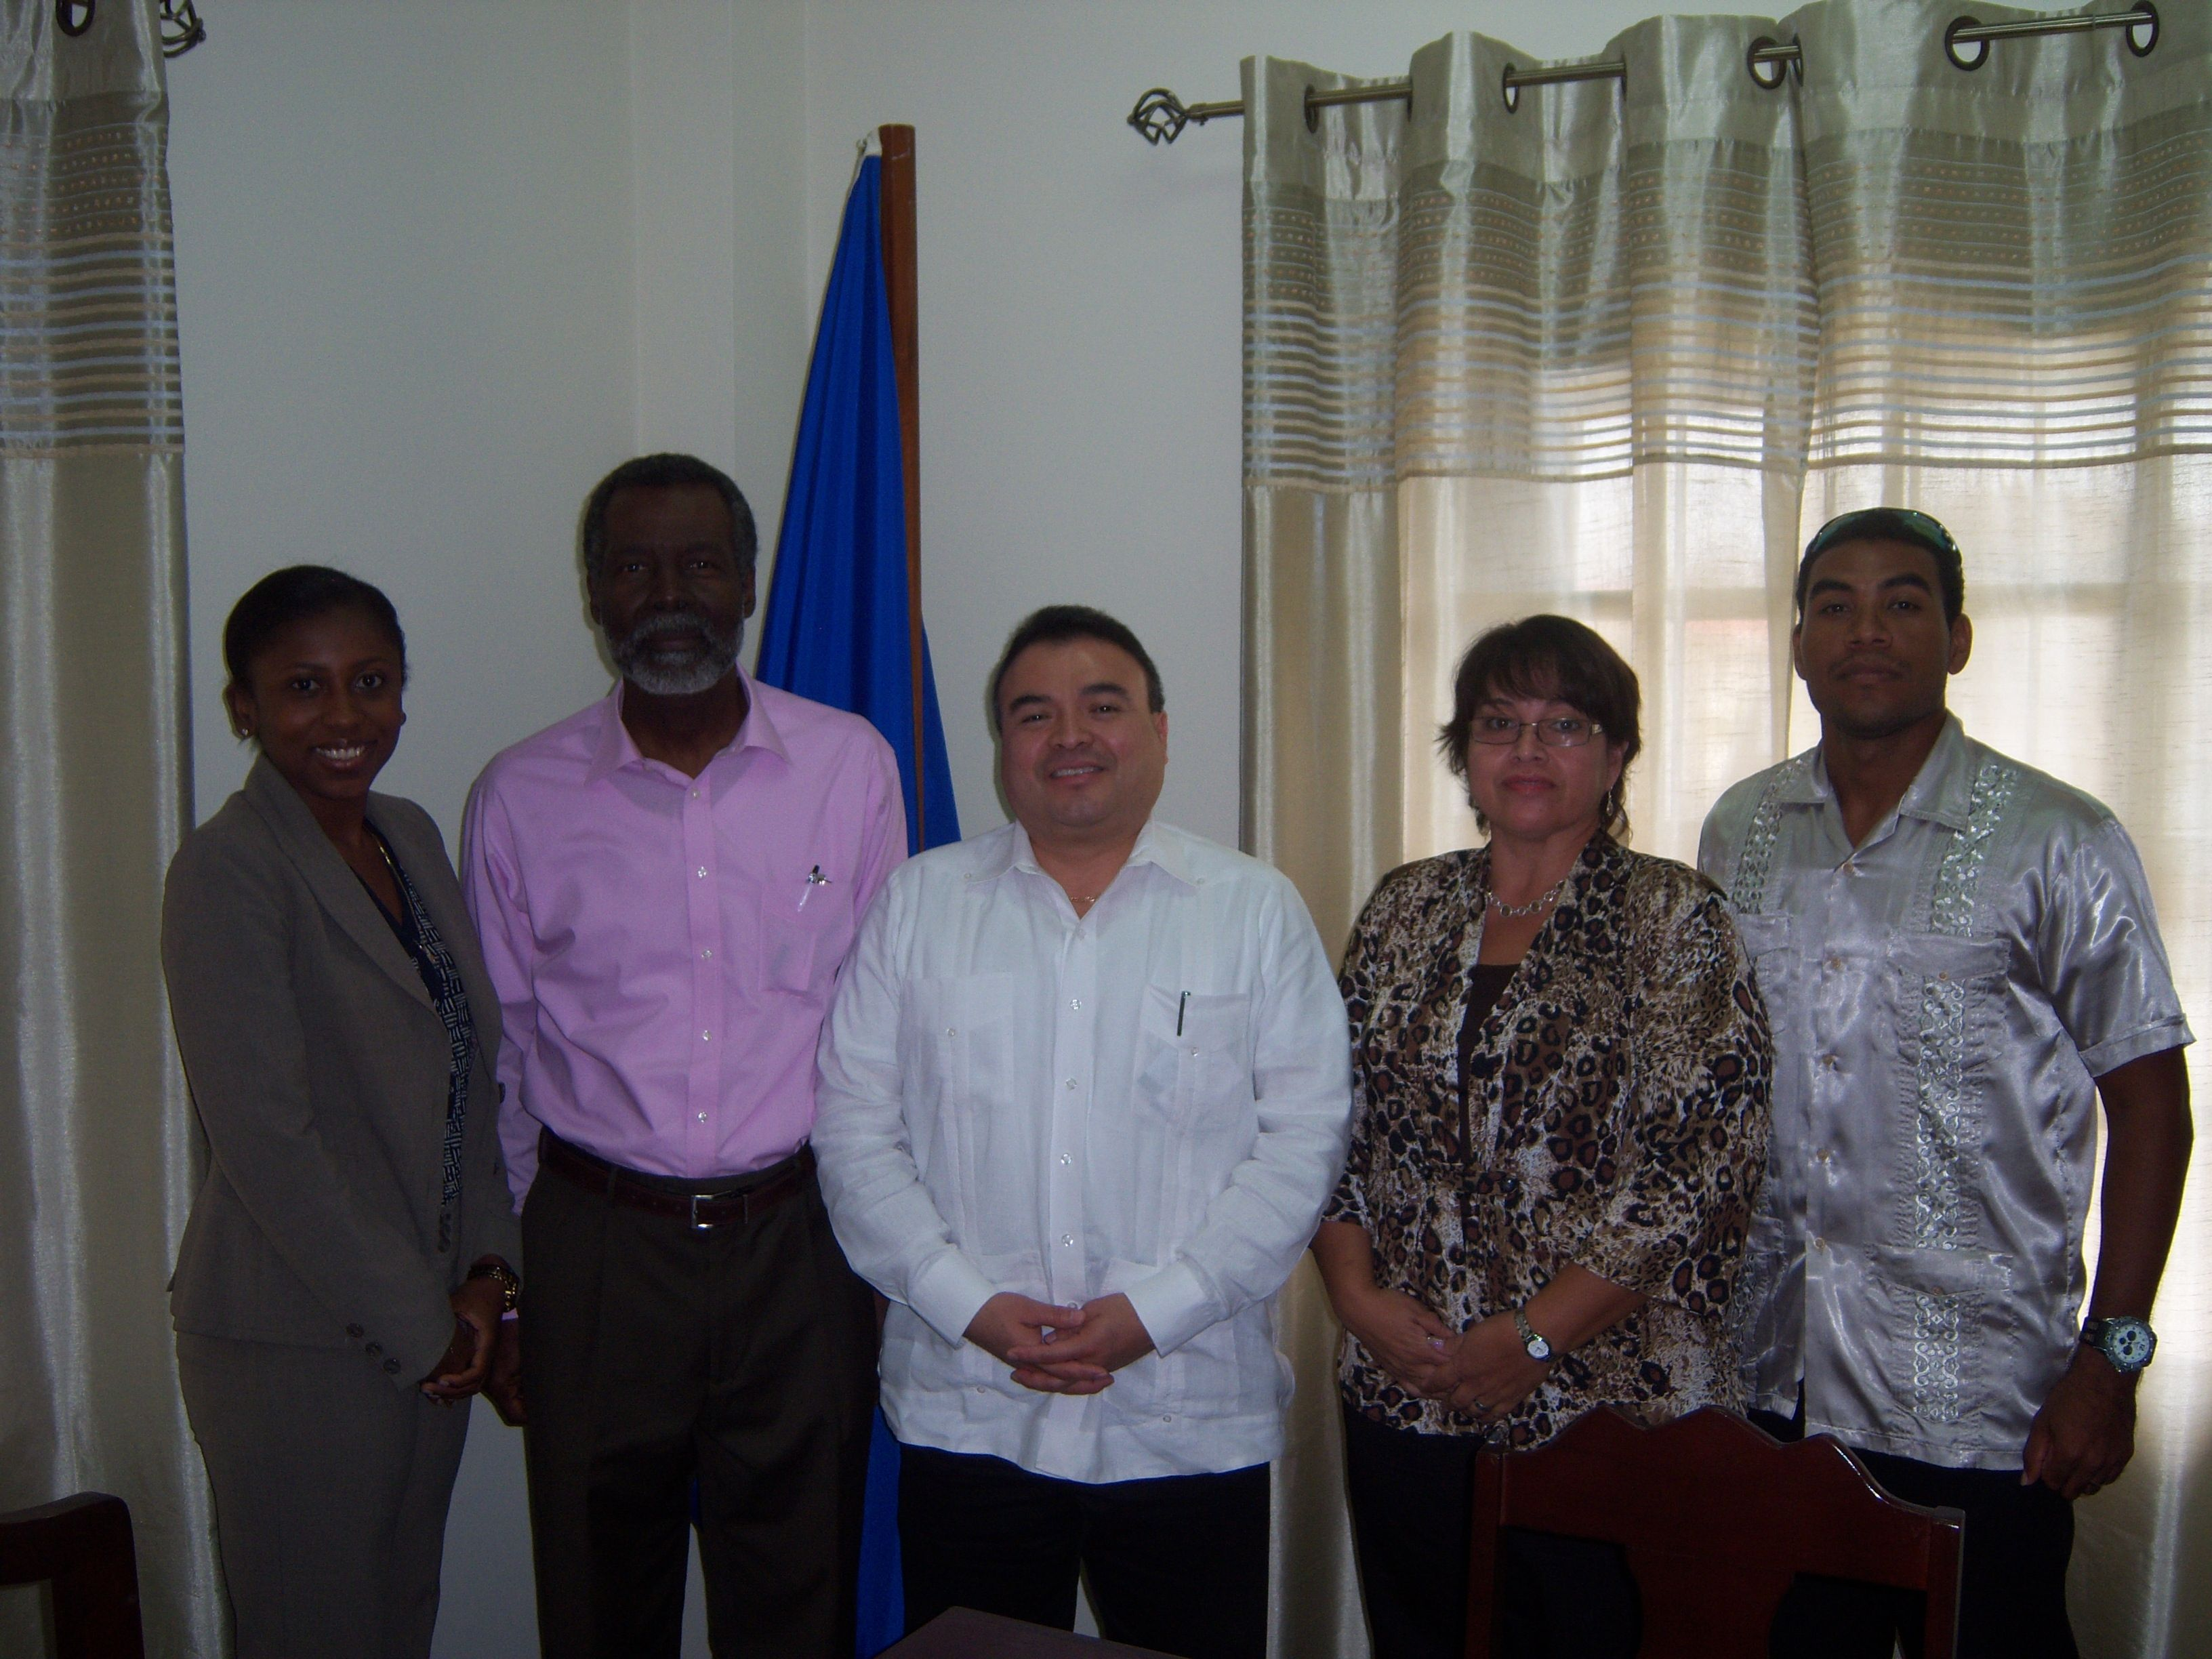 OAS Assistant Secretary General H. E. Nestor Mendez Visits OAS Country Office in Belize